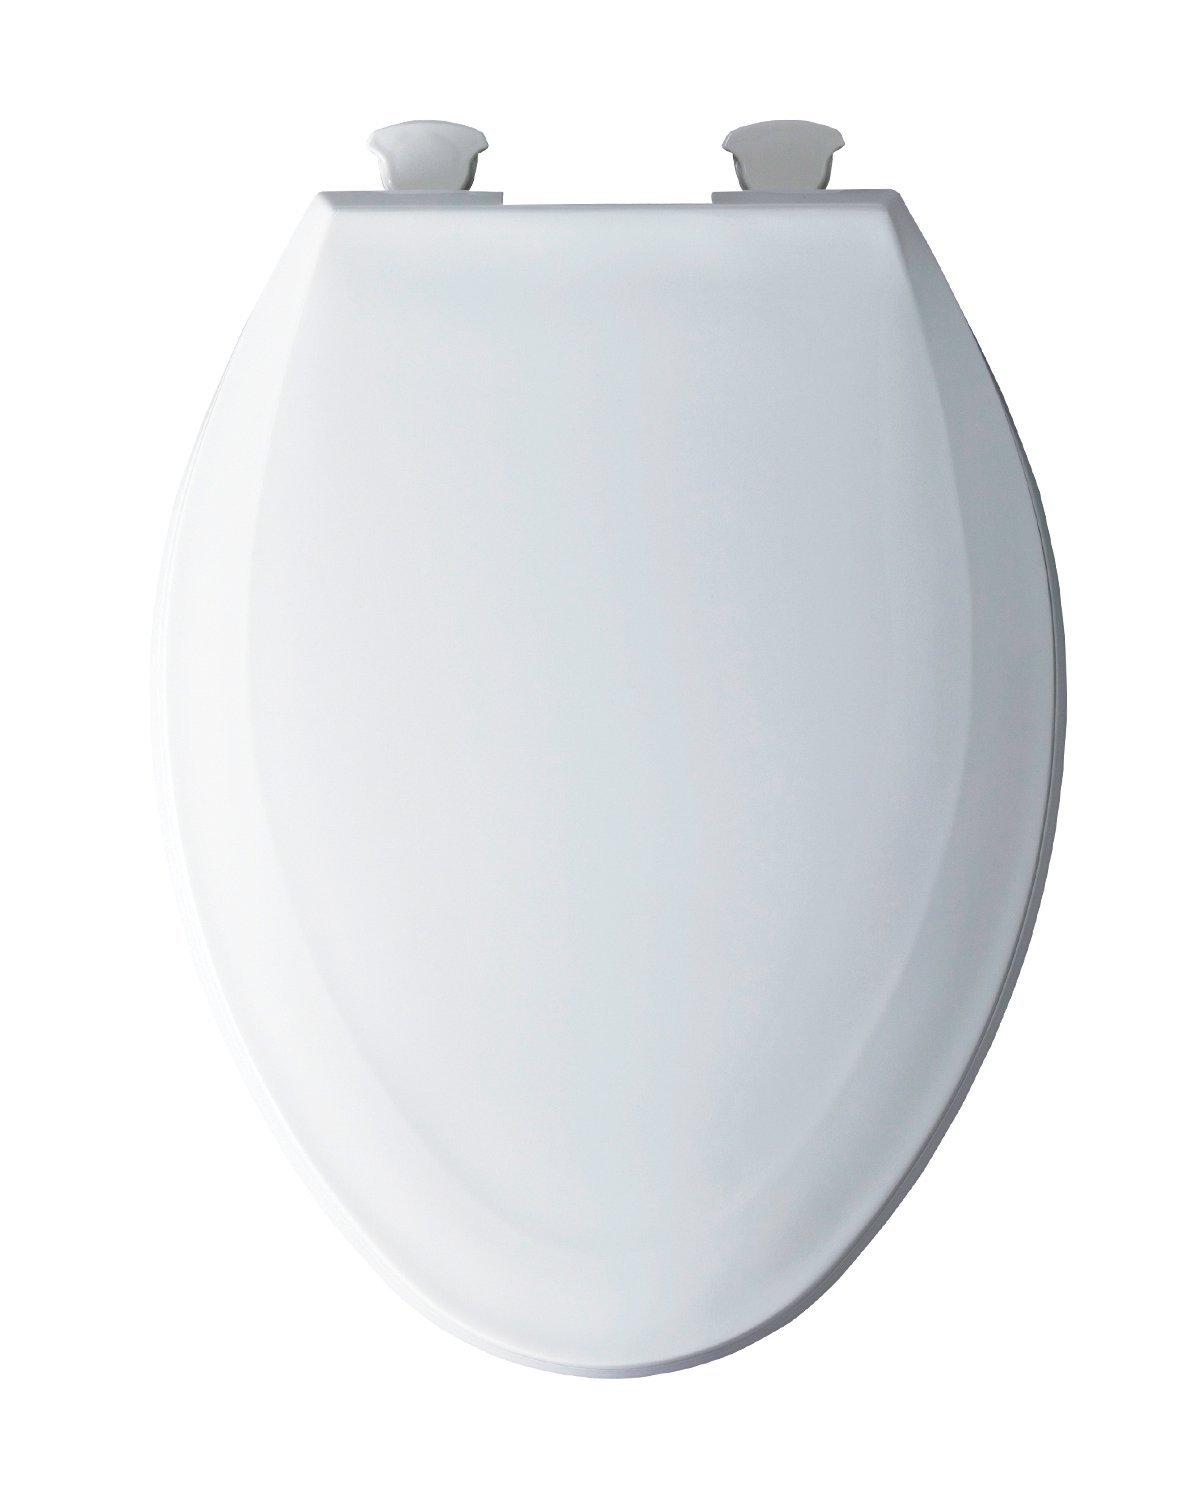 Cool Bemis 1100Ec 000 Toilet Seat With Easy Clean Change Hinges Elongated Plastic White Dailytribune Chair Design For Home Dailytribuneorg